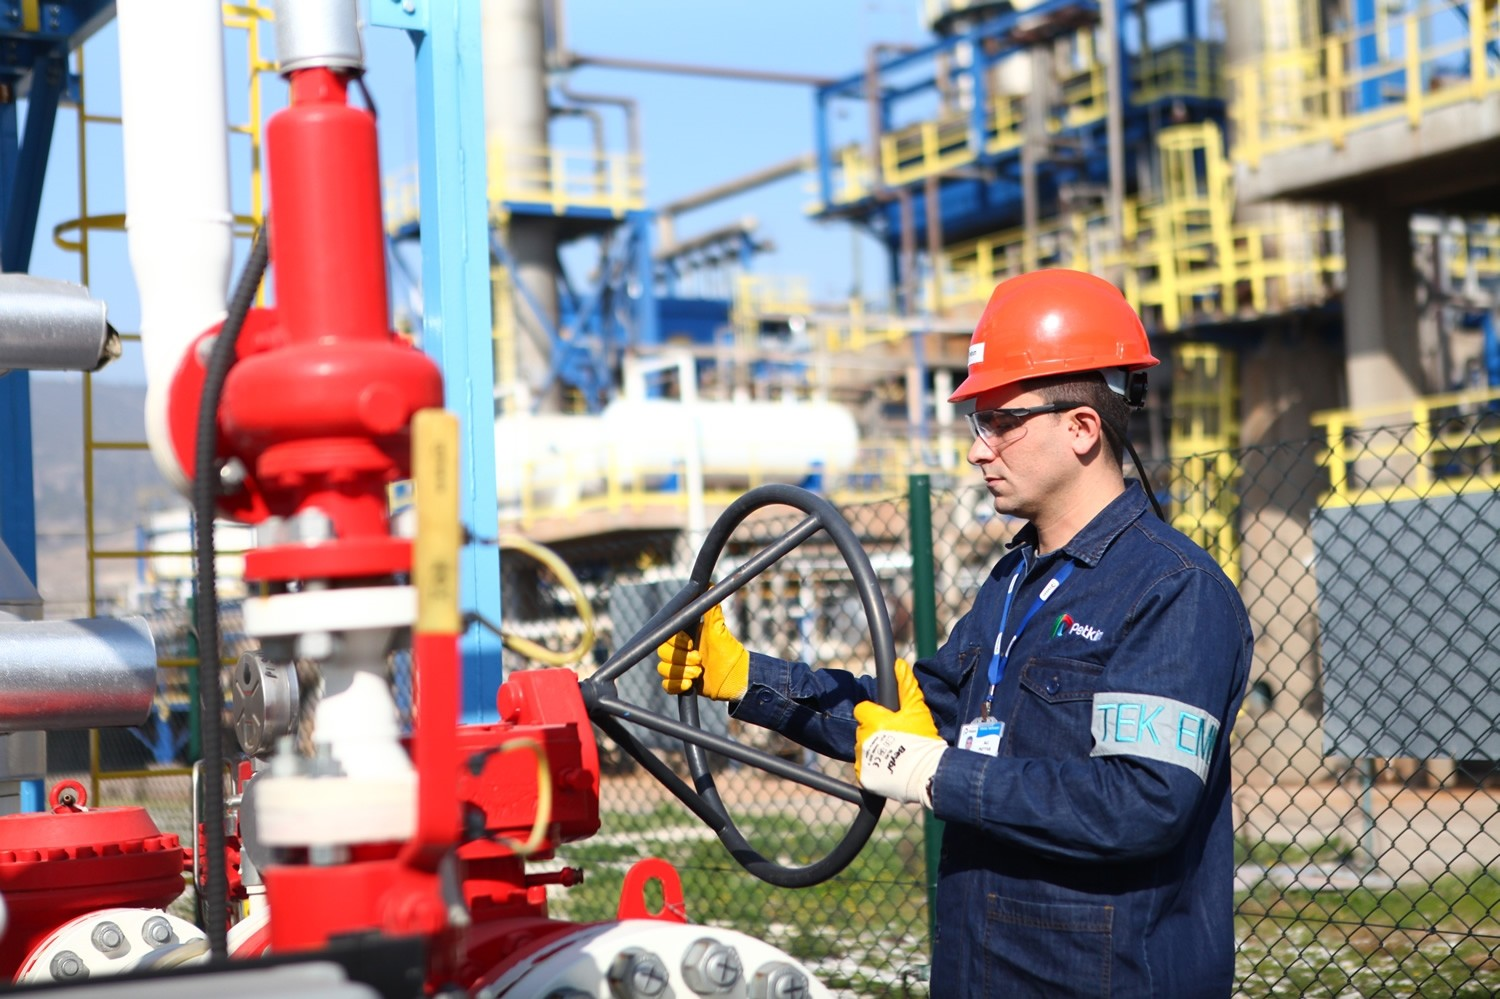 Petkim produces 3.6 million tons of petrochemical products, mostly sold in the domestic market.